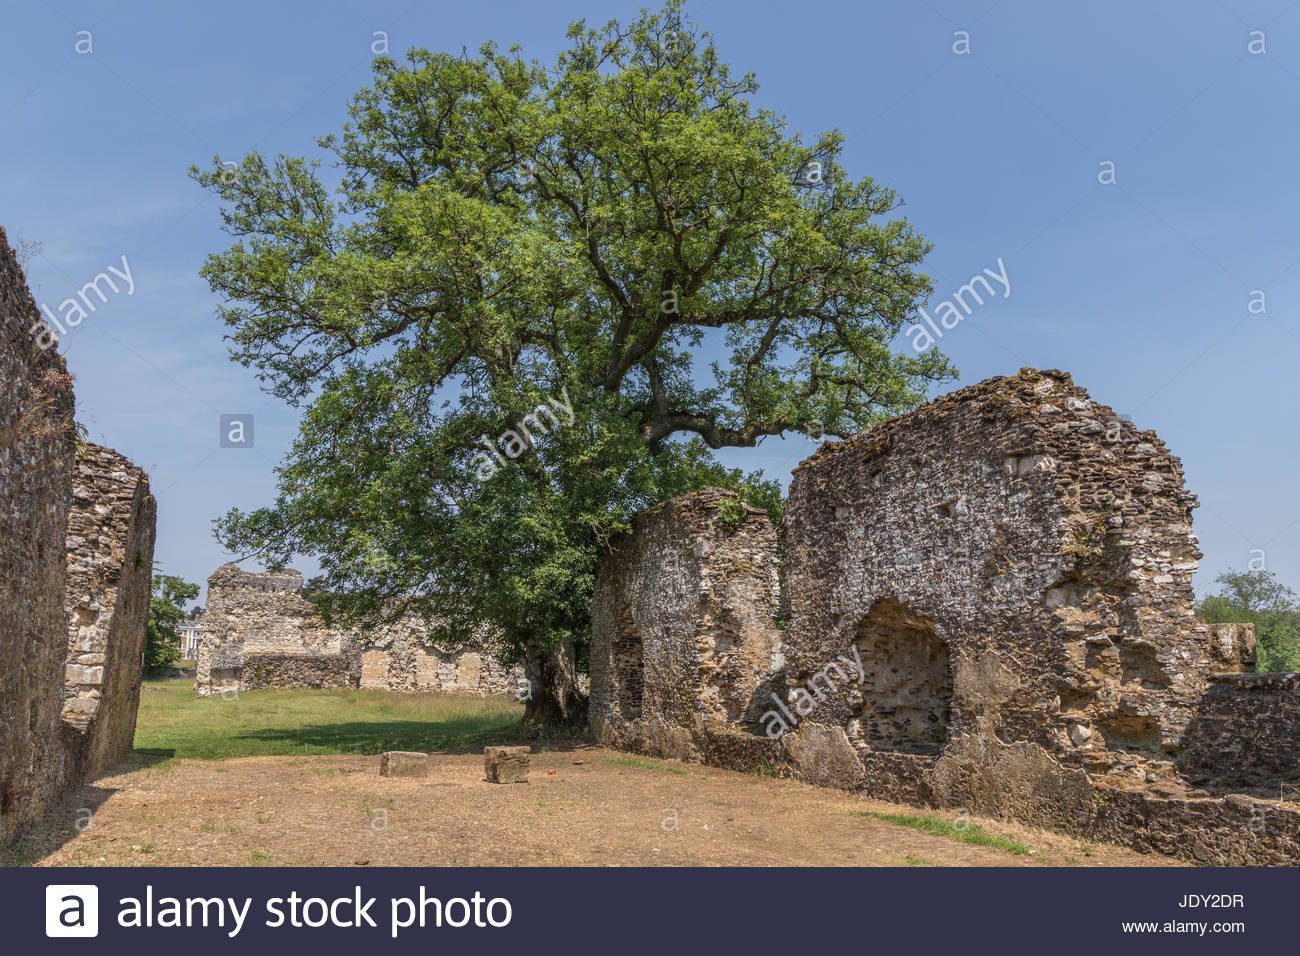 Waverley Abbey, the first Cistercian monastery in England founded in 1128 by William Gifford, Bishop of Winchester. - Stock Image